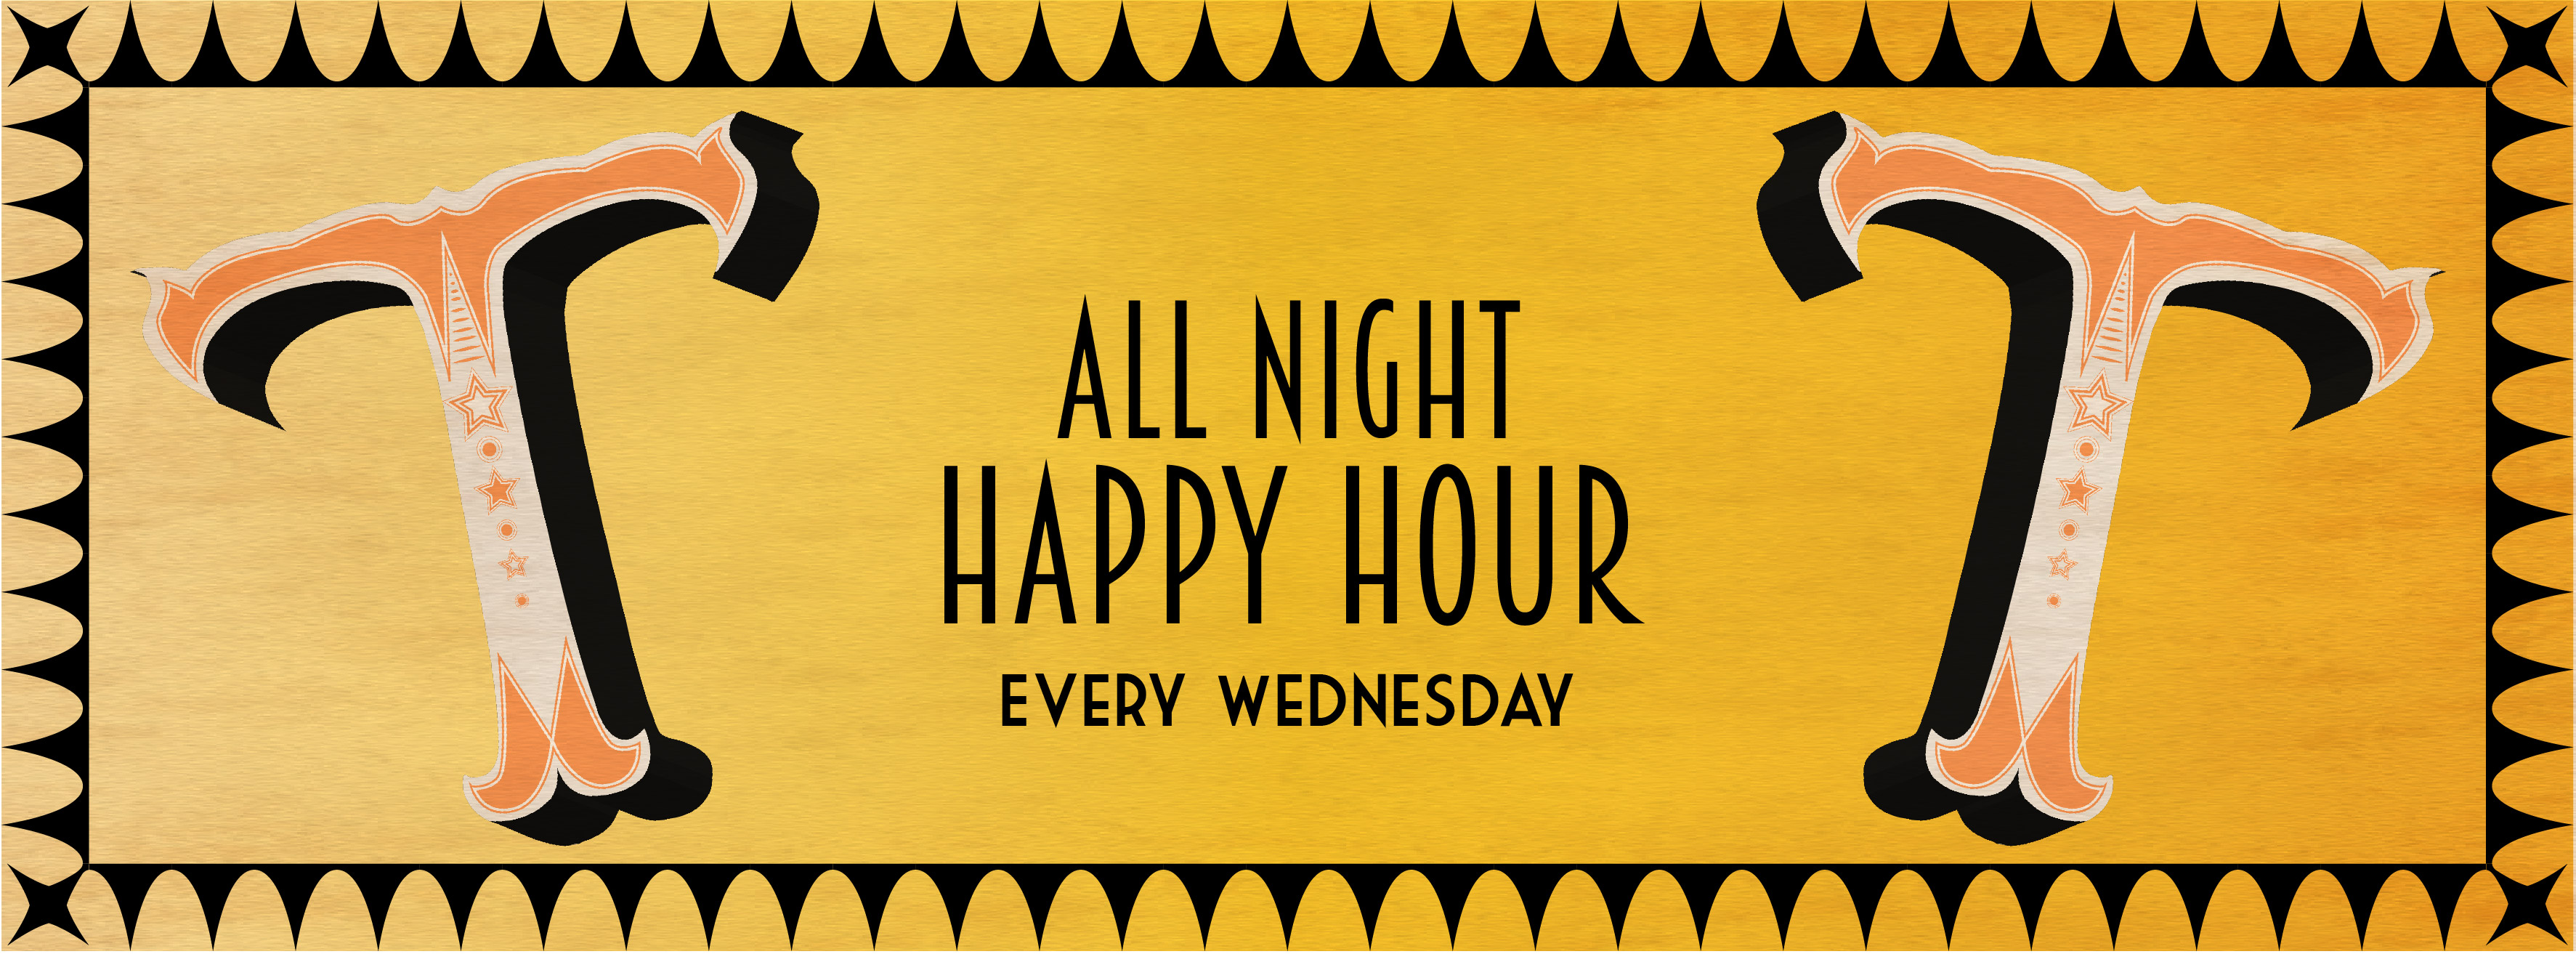 Happy Hour All Night